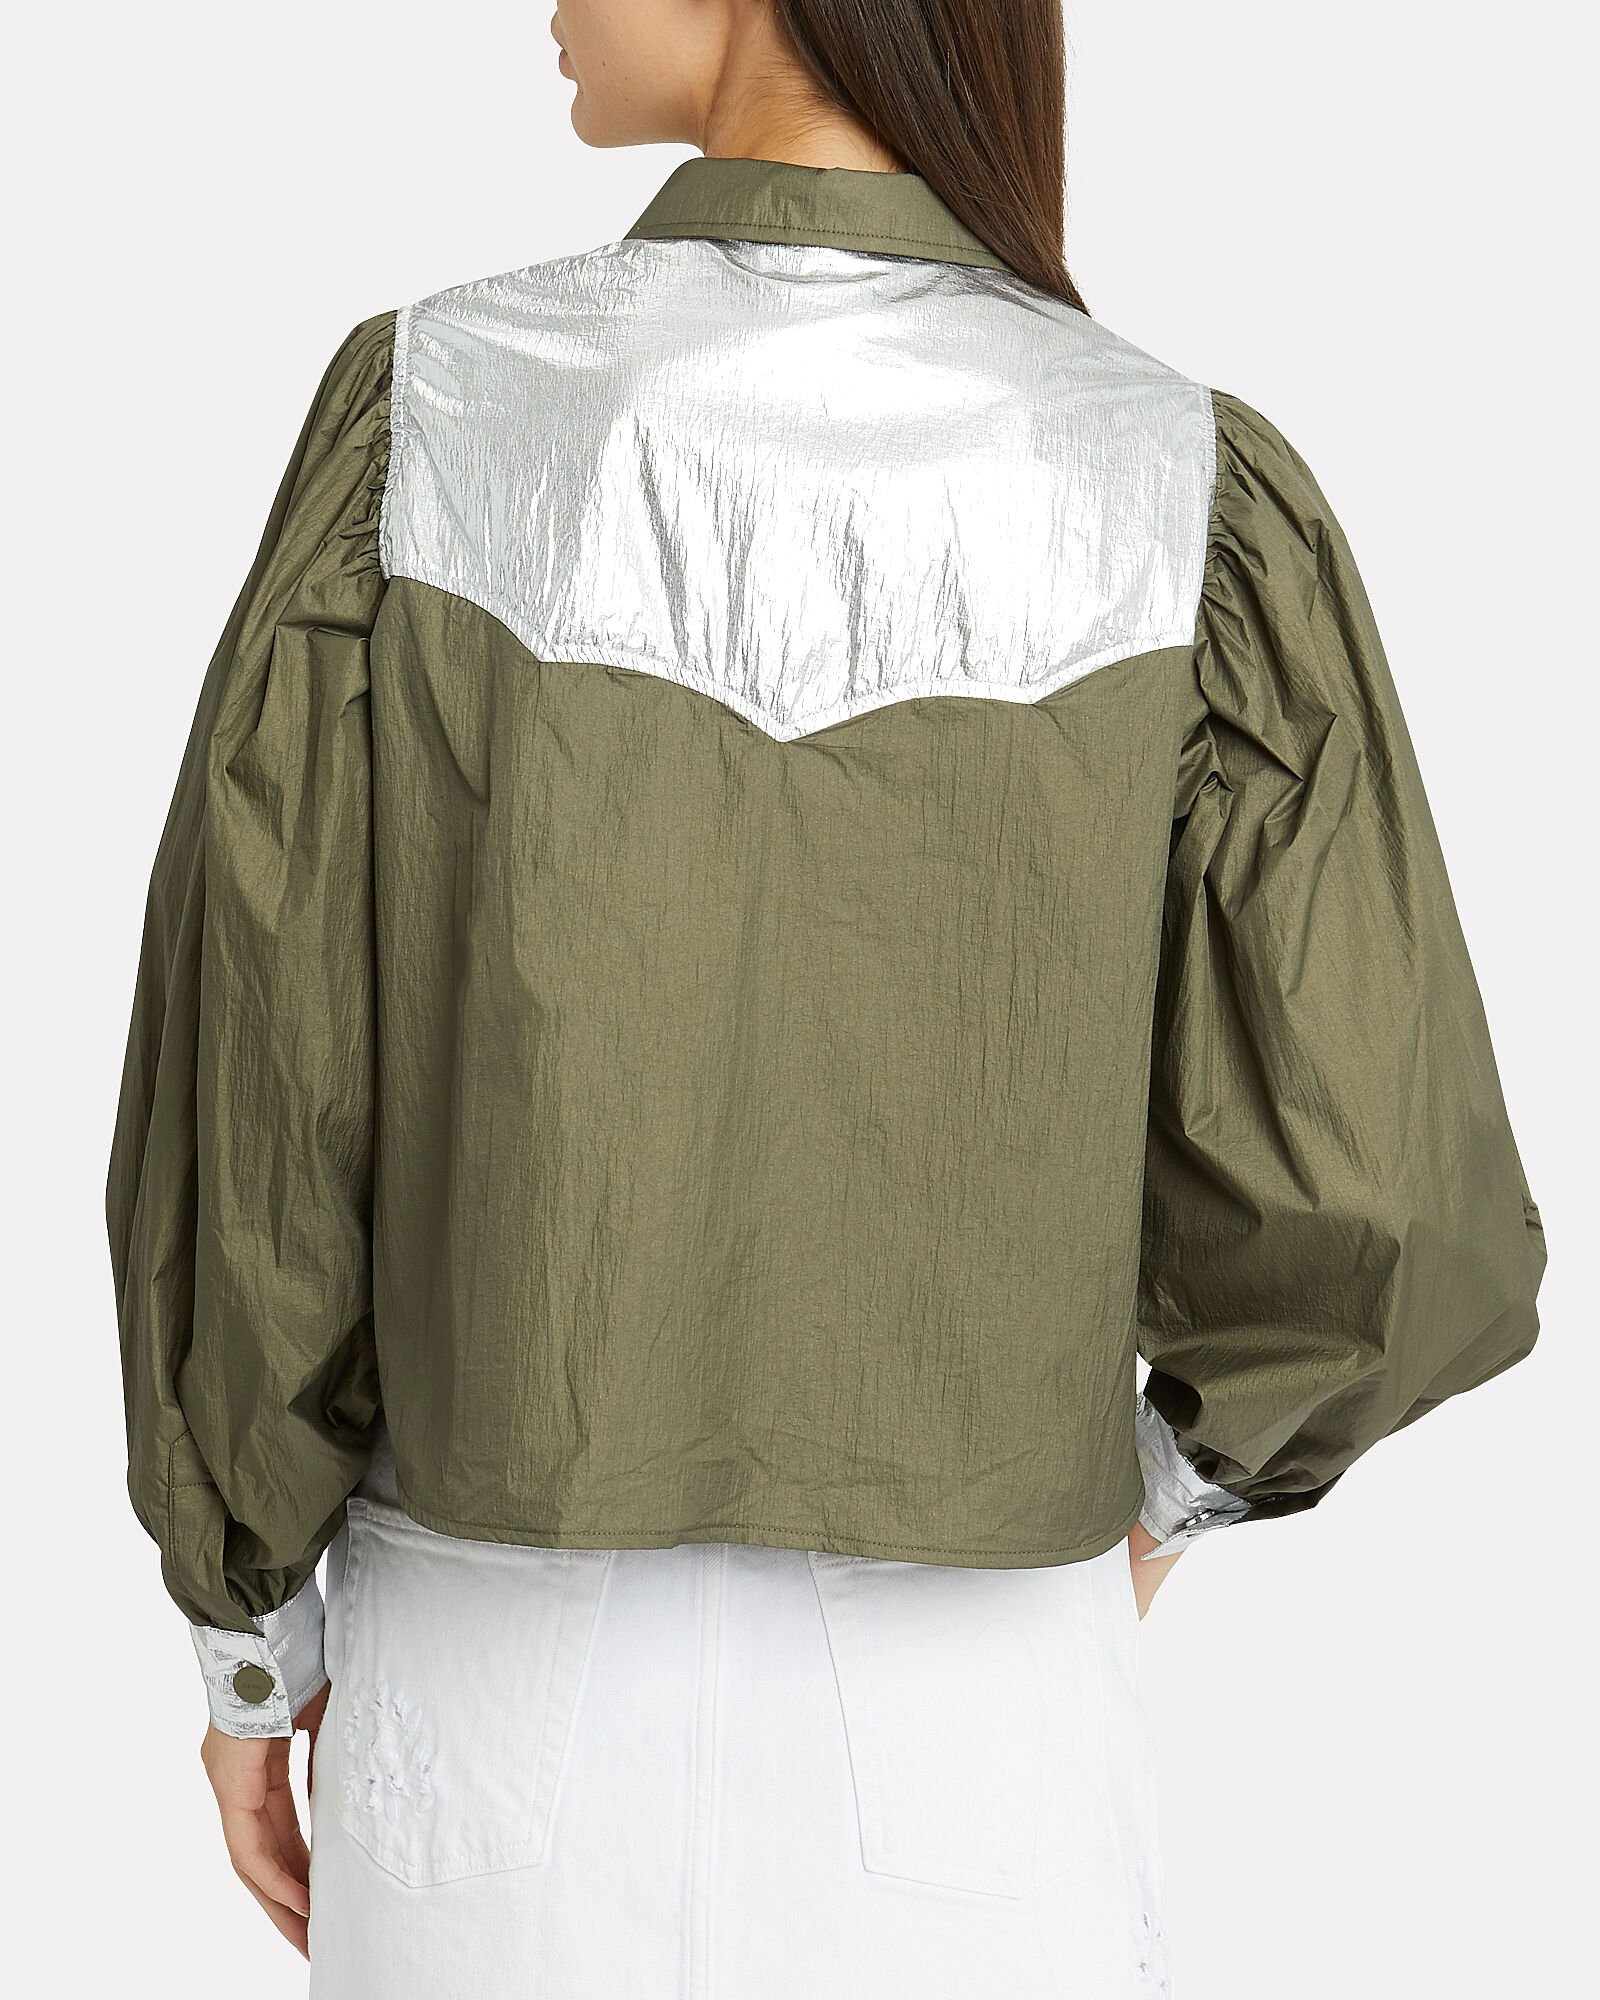 Mica Colorblocked Tech Top, OLIVE/ARMY, hi-res